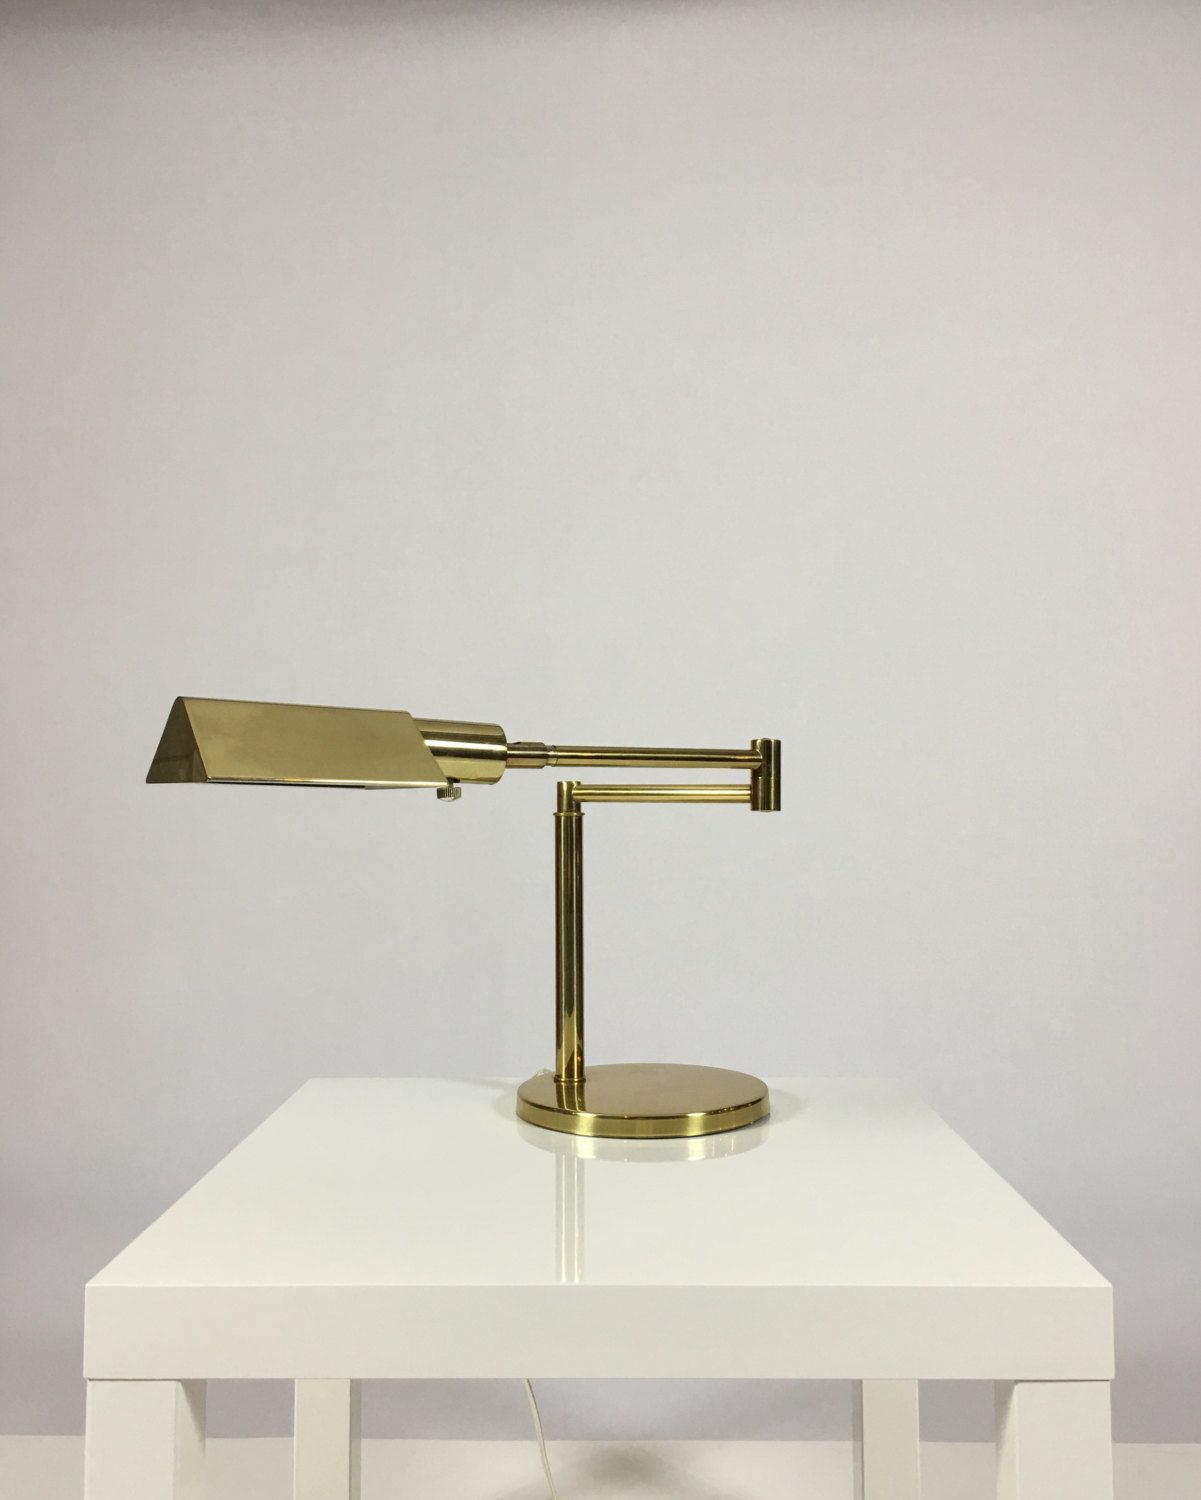 Vintage koch lowy omi brass table lamp swing arm pharmacy reading vintage koch lowy omi brass swing arm desk reading lamp mid century modern mozeypictures Choice Image